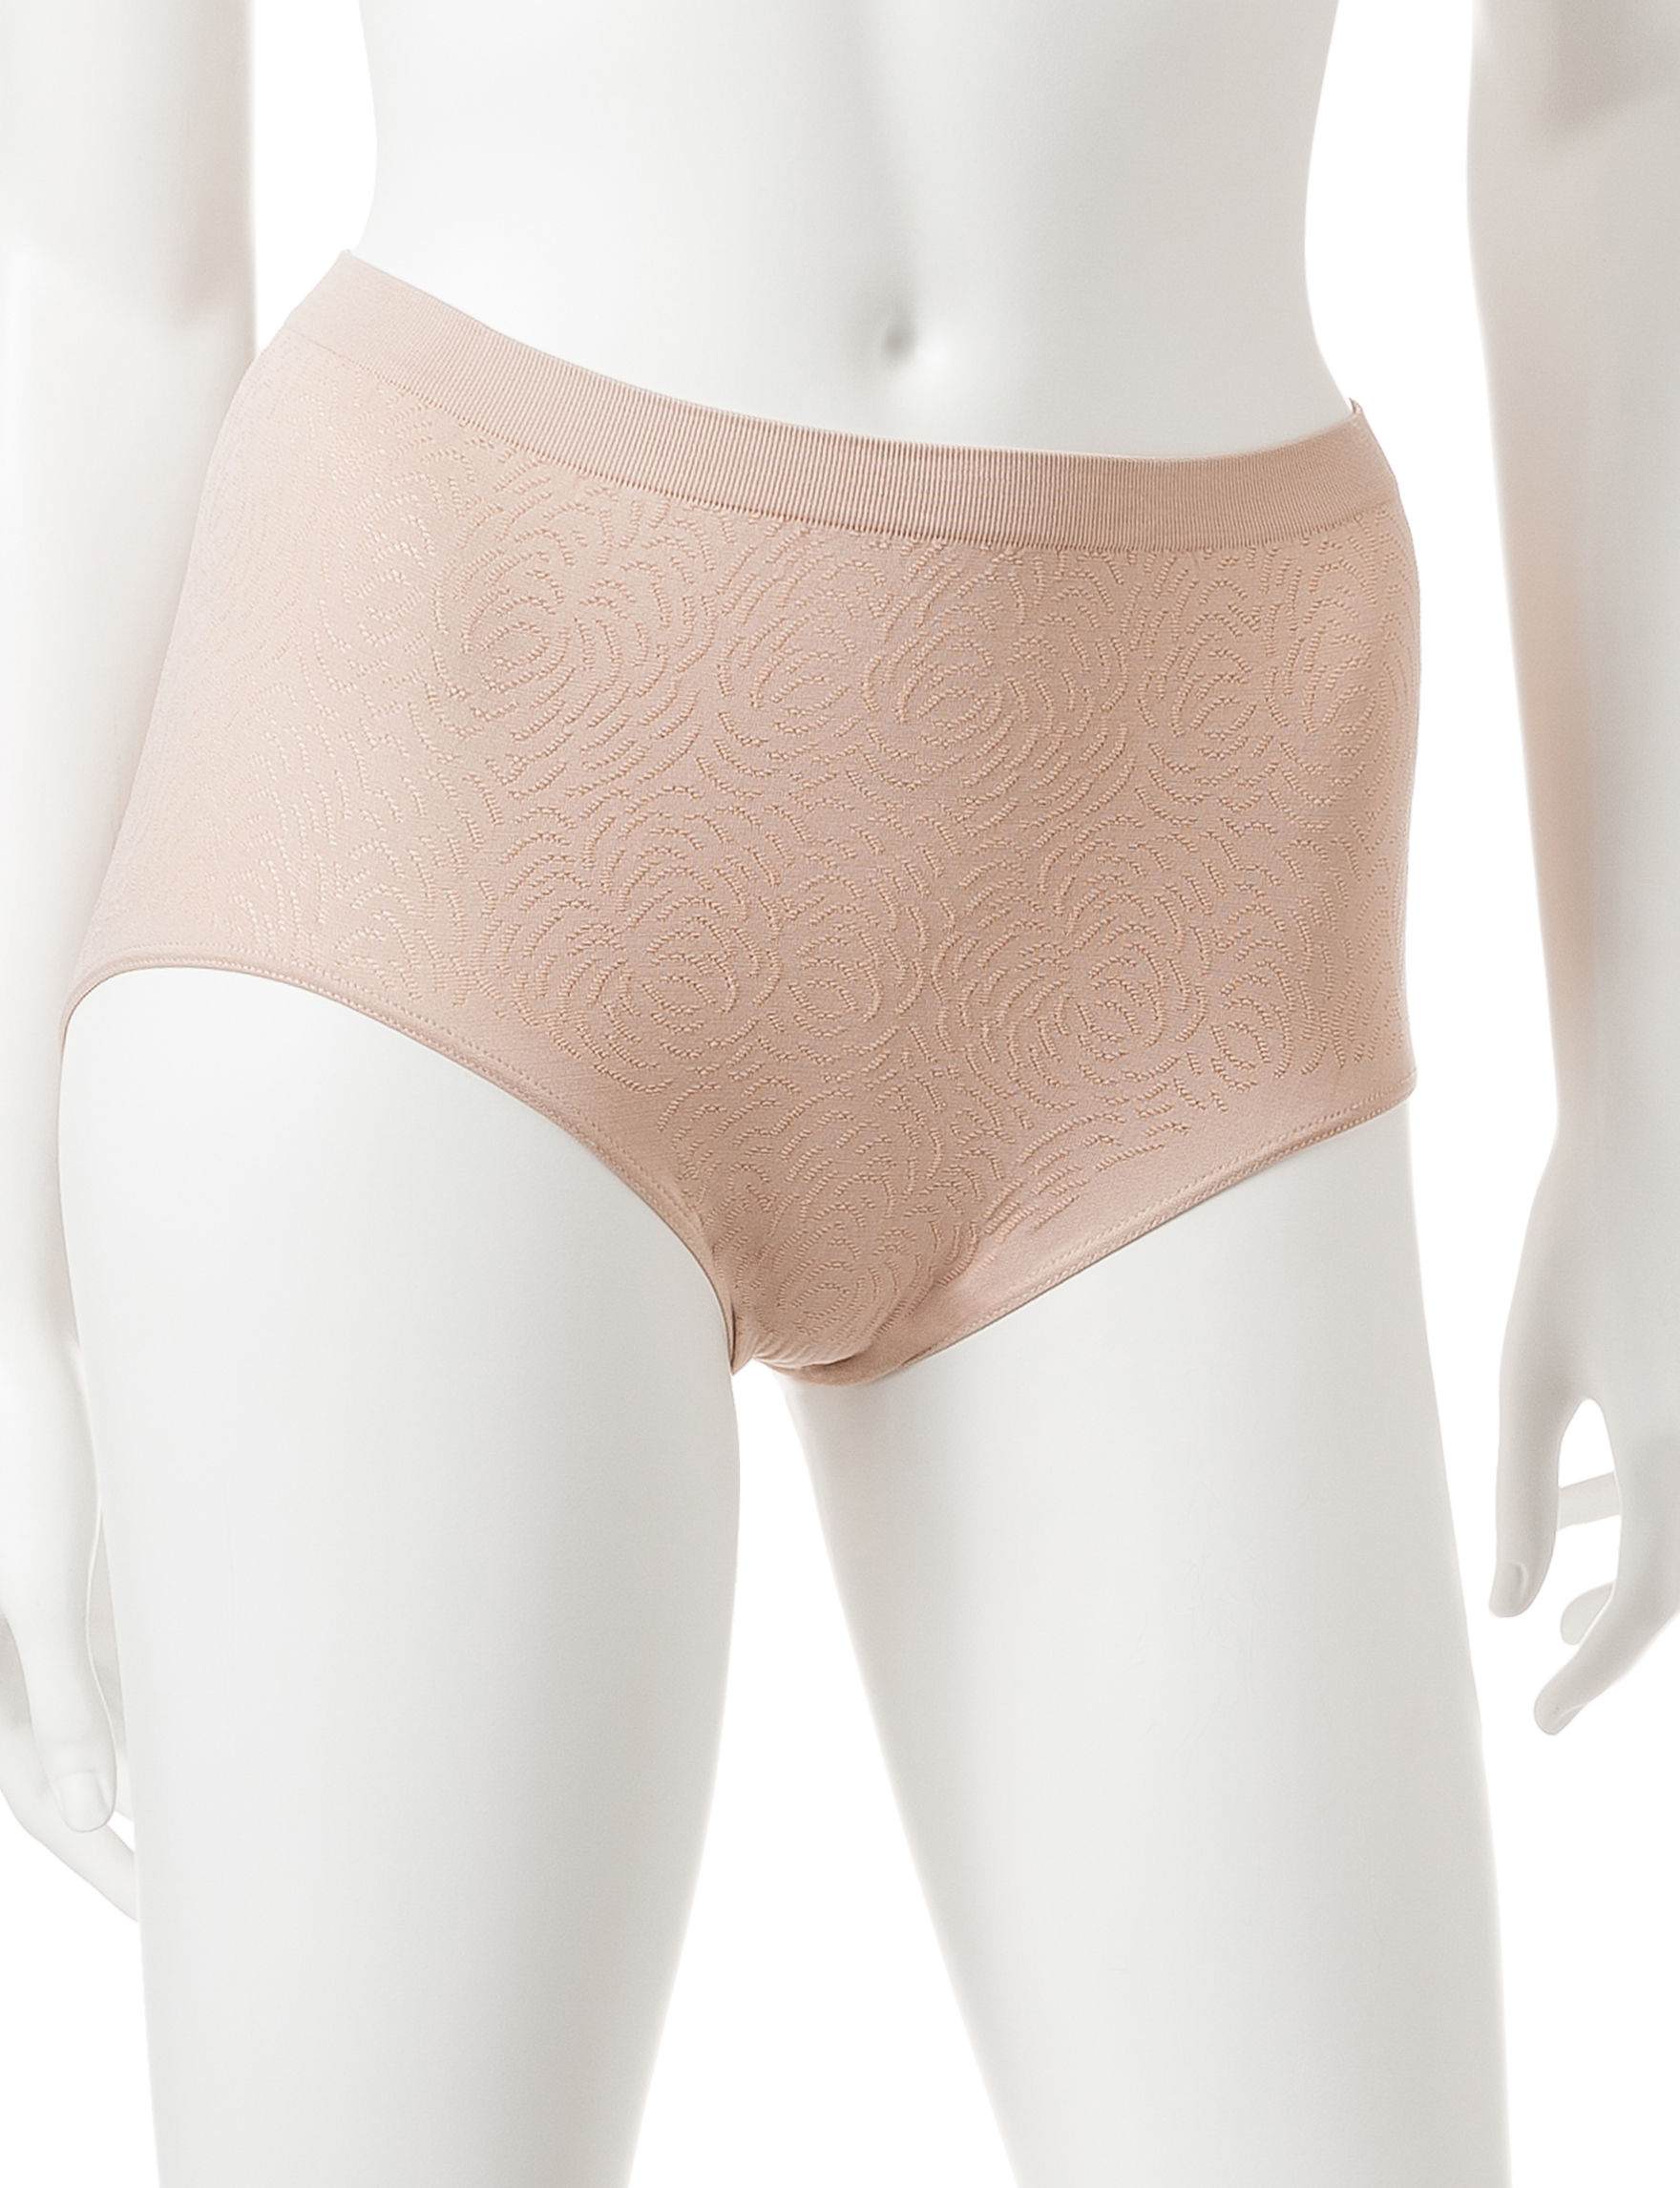 Bali Nude Panties Briefs High Waist Seamless